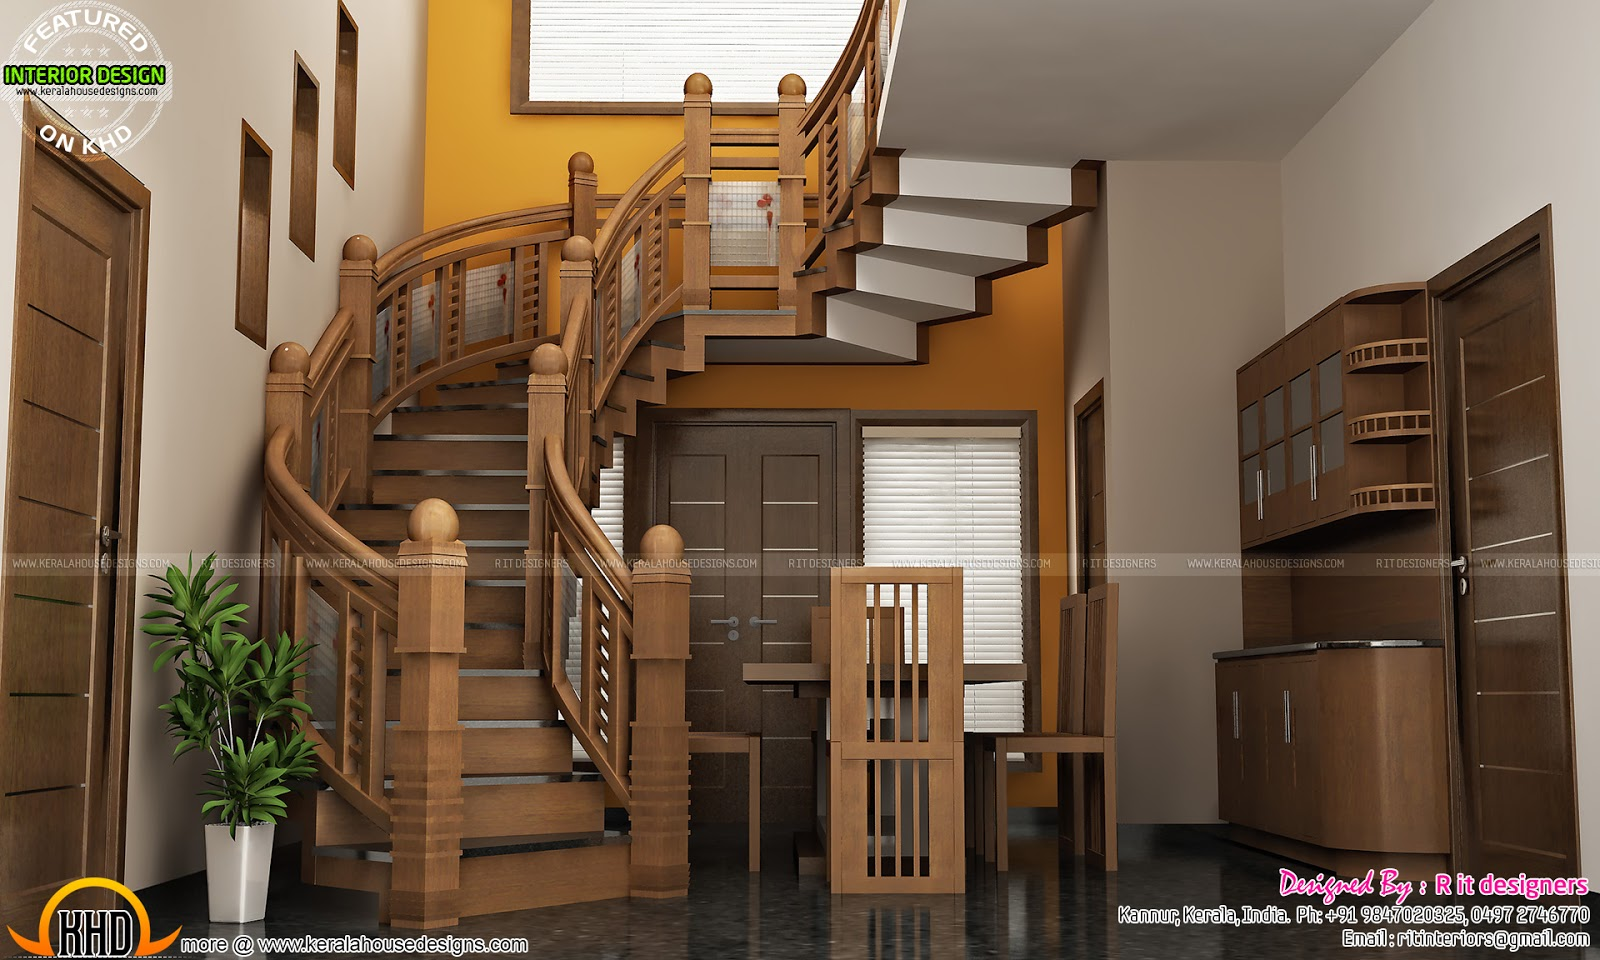 Under stair design wooden stair kitchen and living kerala home design and floor plans Interior design ideas for kerala houses